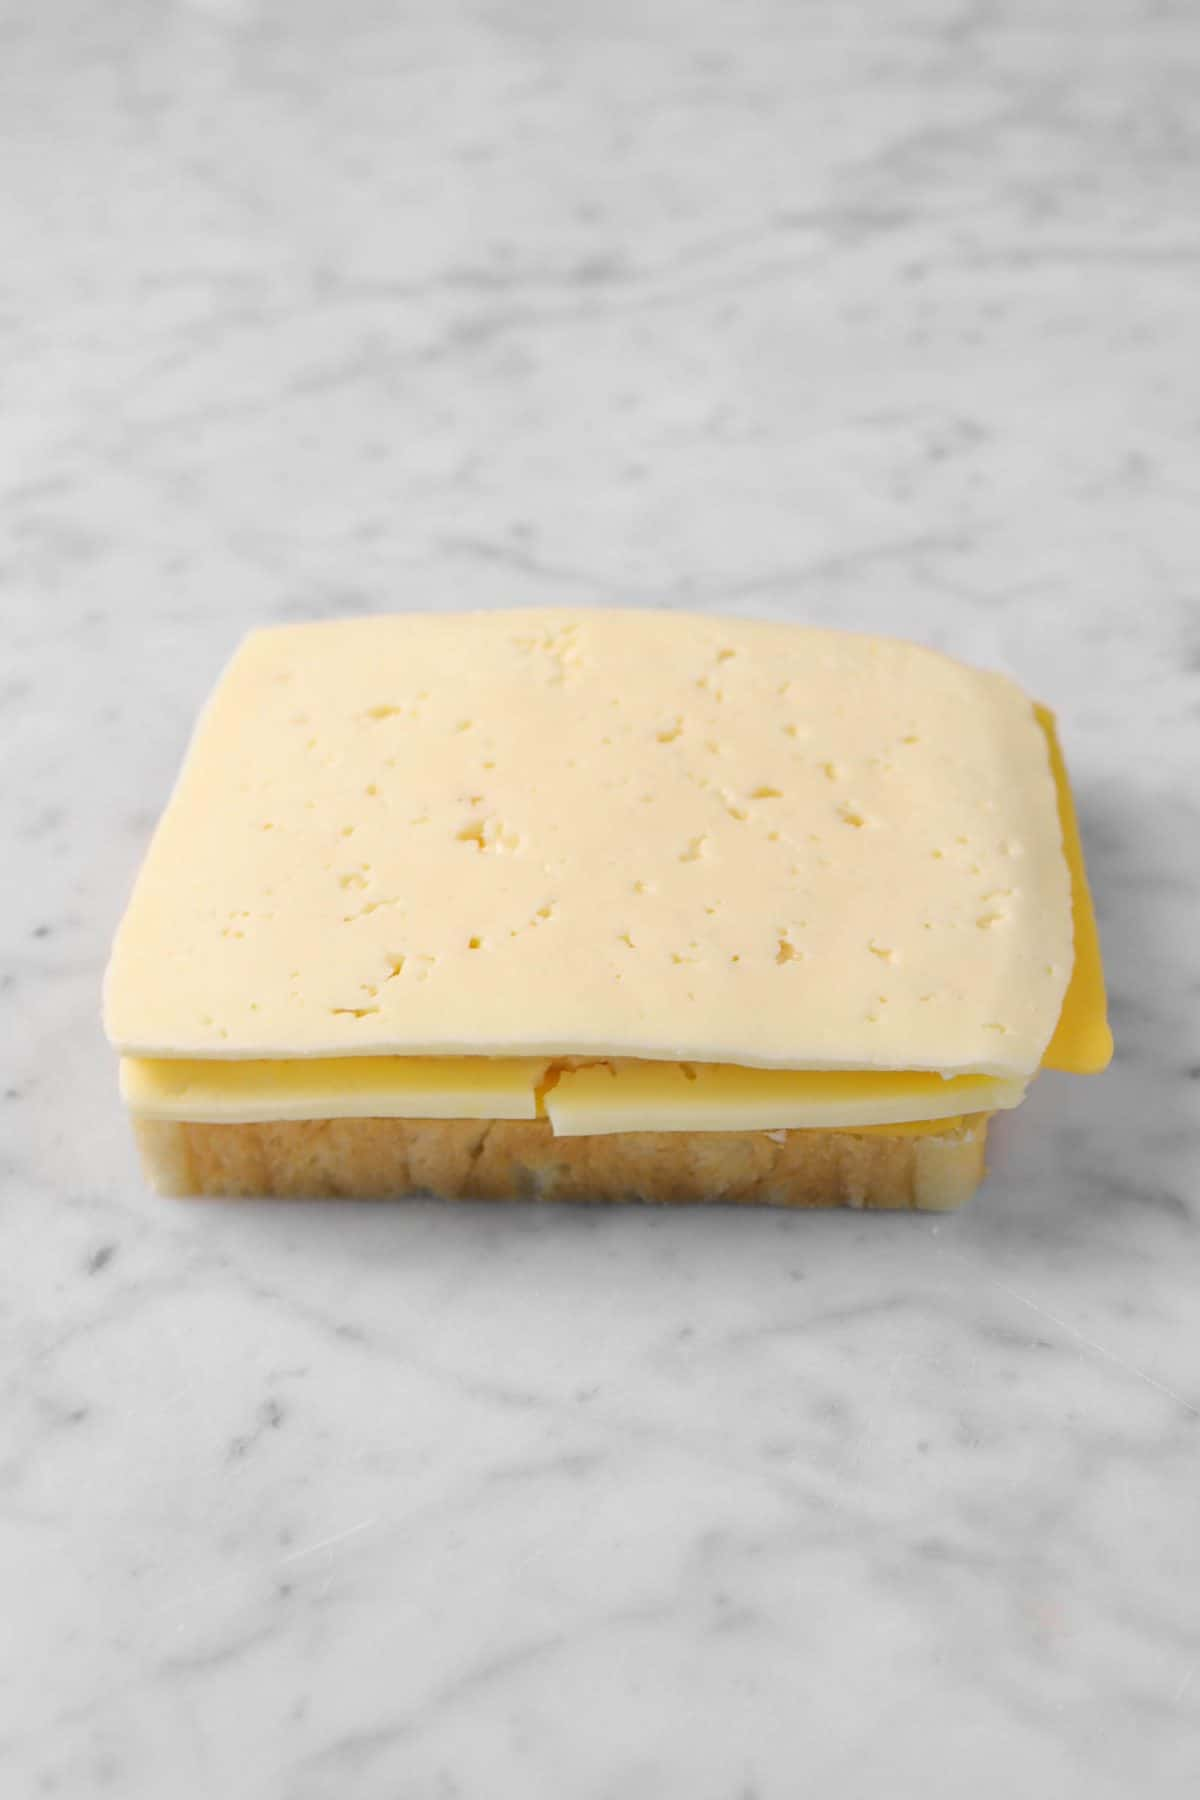 cheese slices on a slice of bread on a marble counter